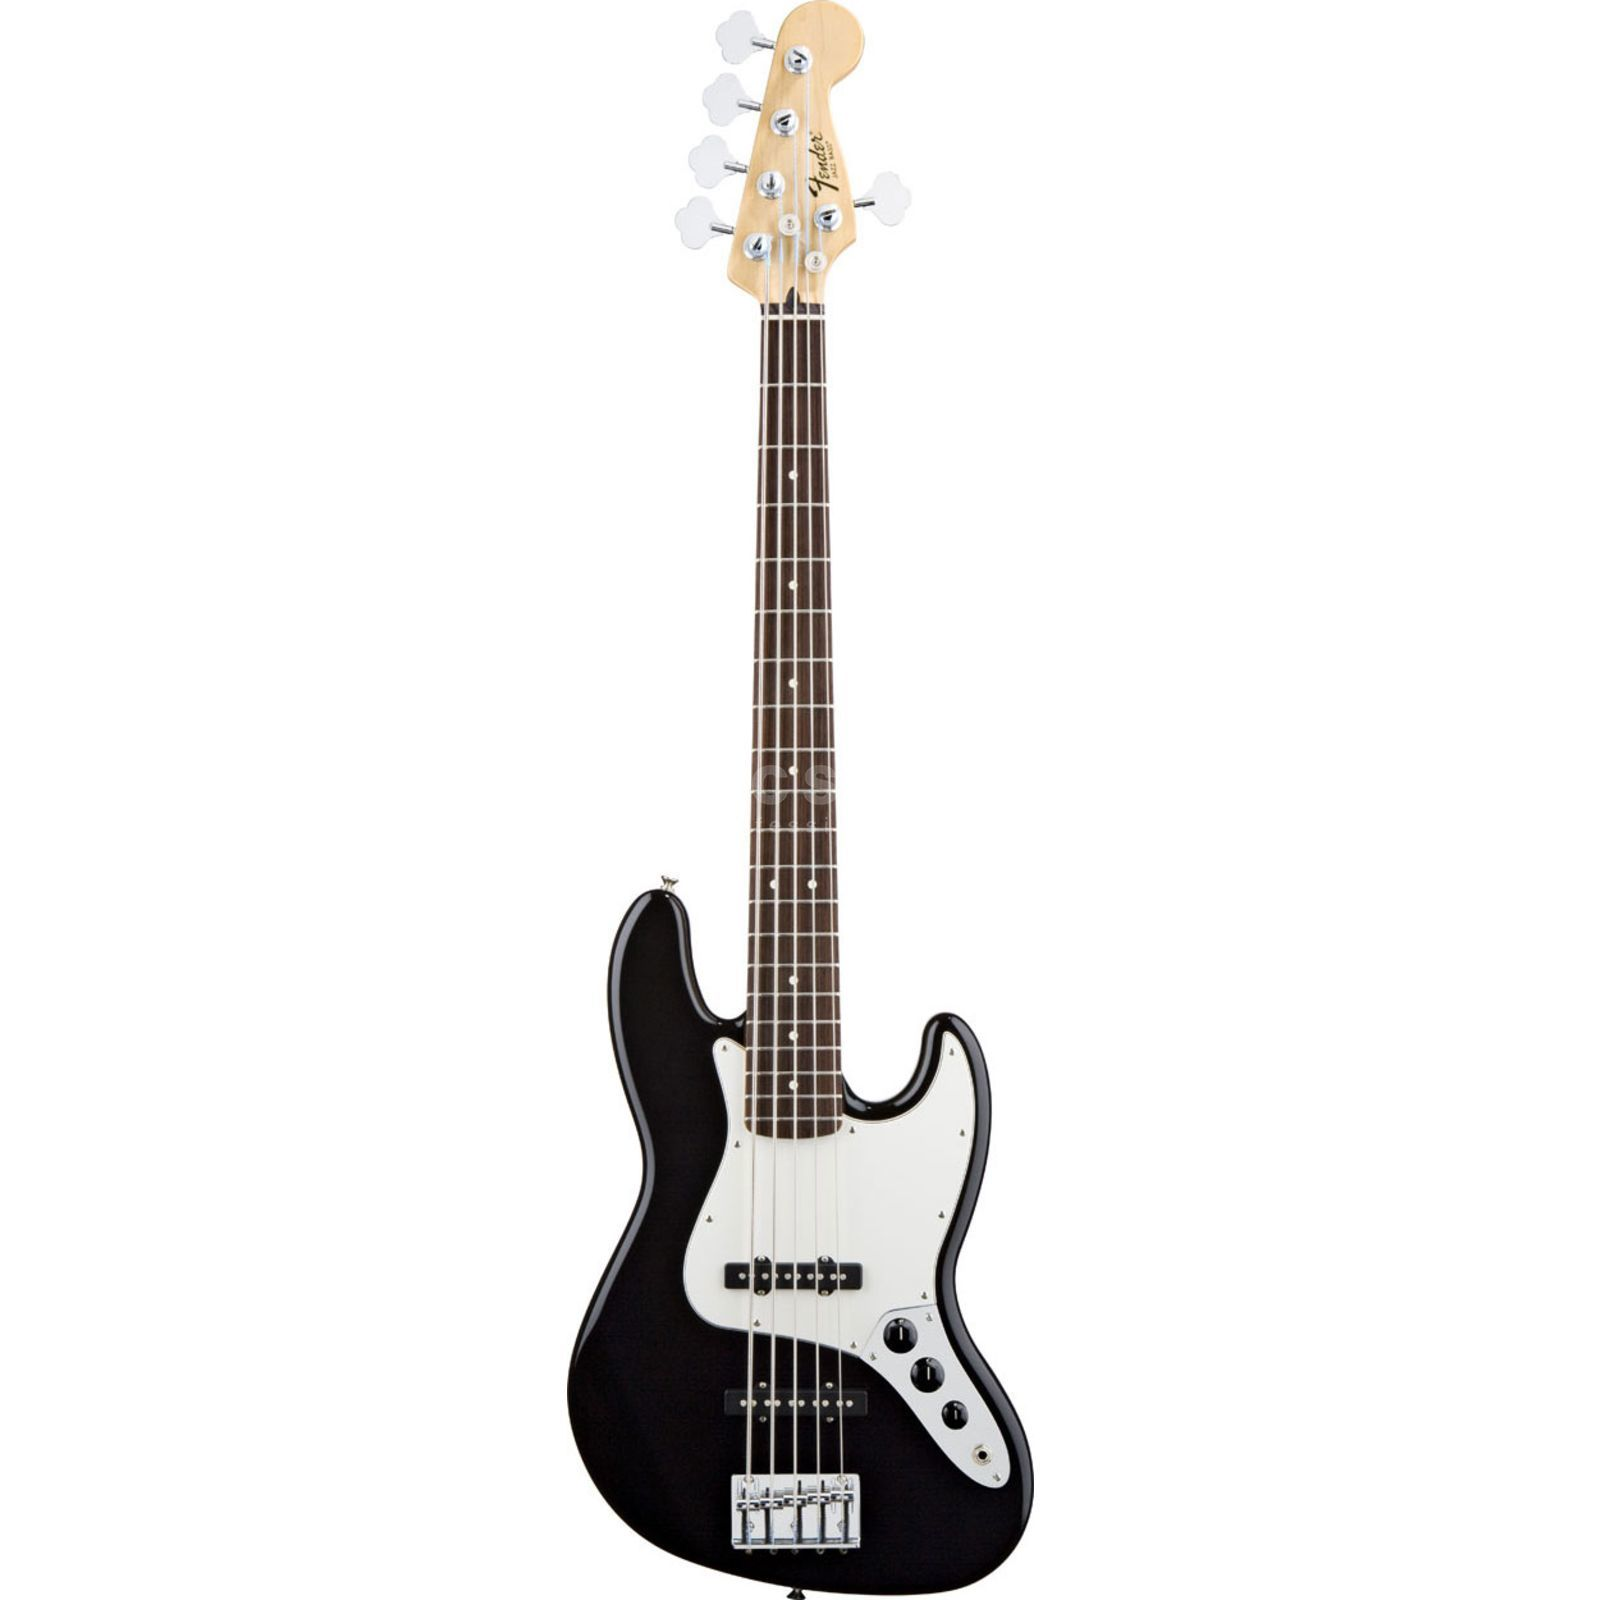 Fender Standard Jazz Bass V RW Black Product Image